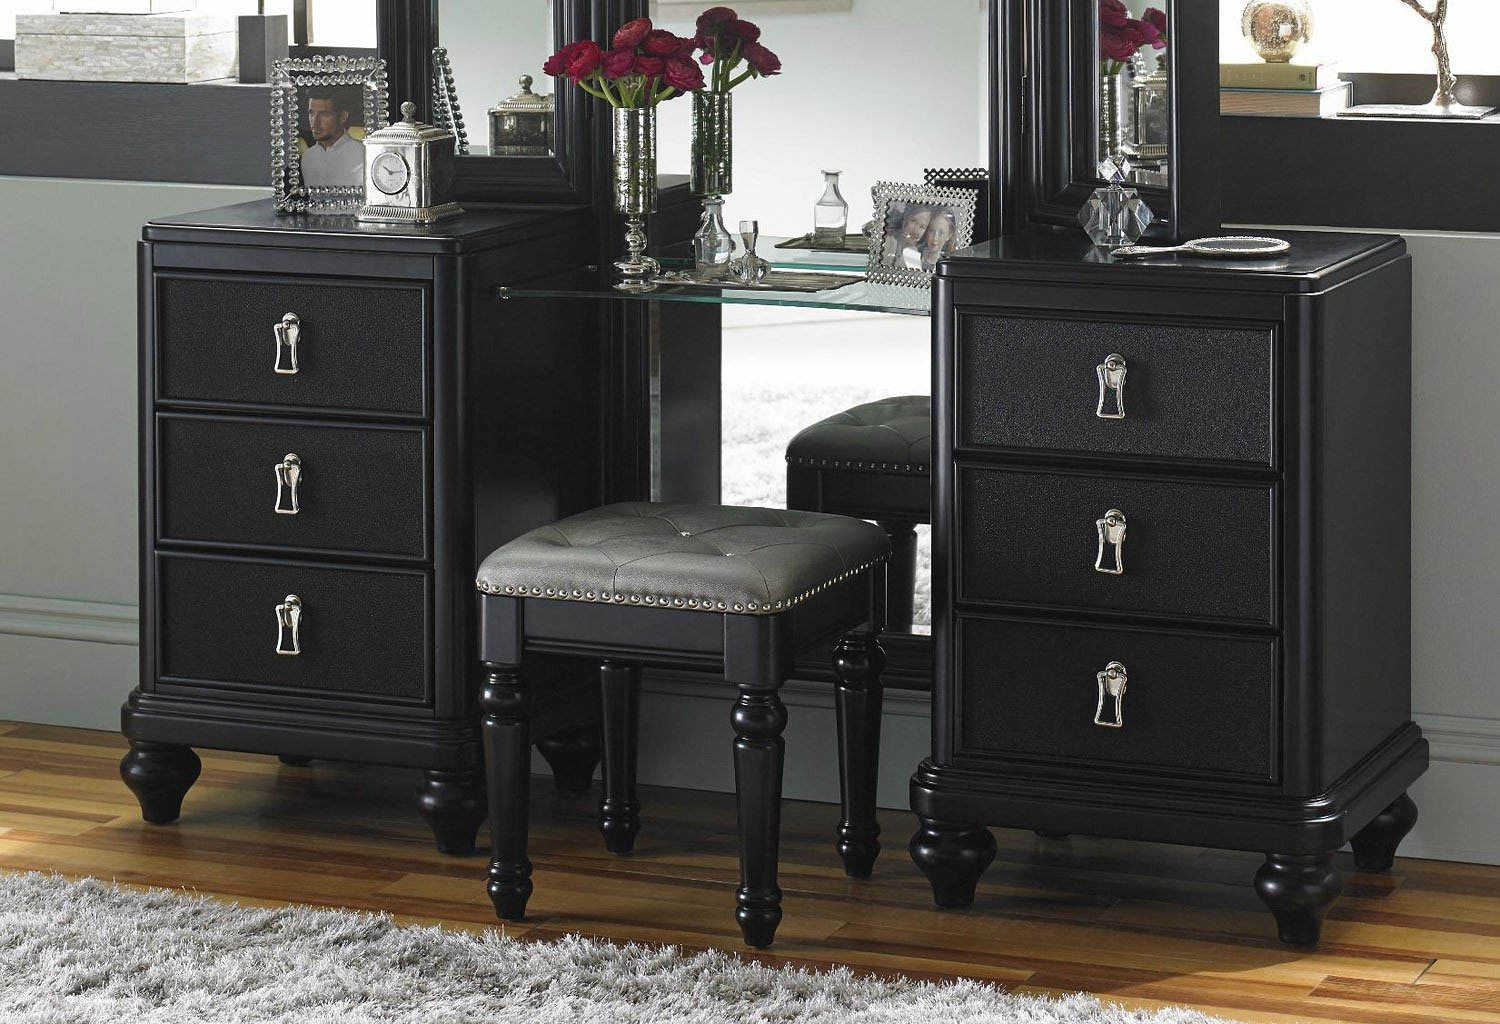 Bedroom Set With Vanity Diva Midnight Vanity Dresser W Stool Bedroom Vanities